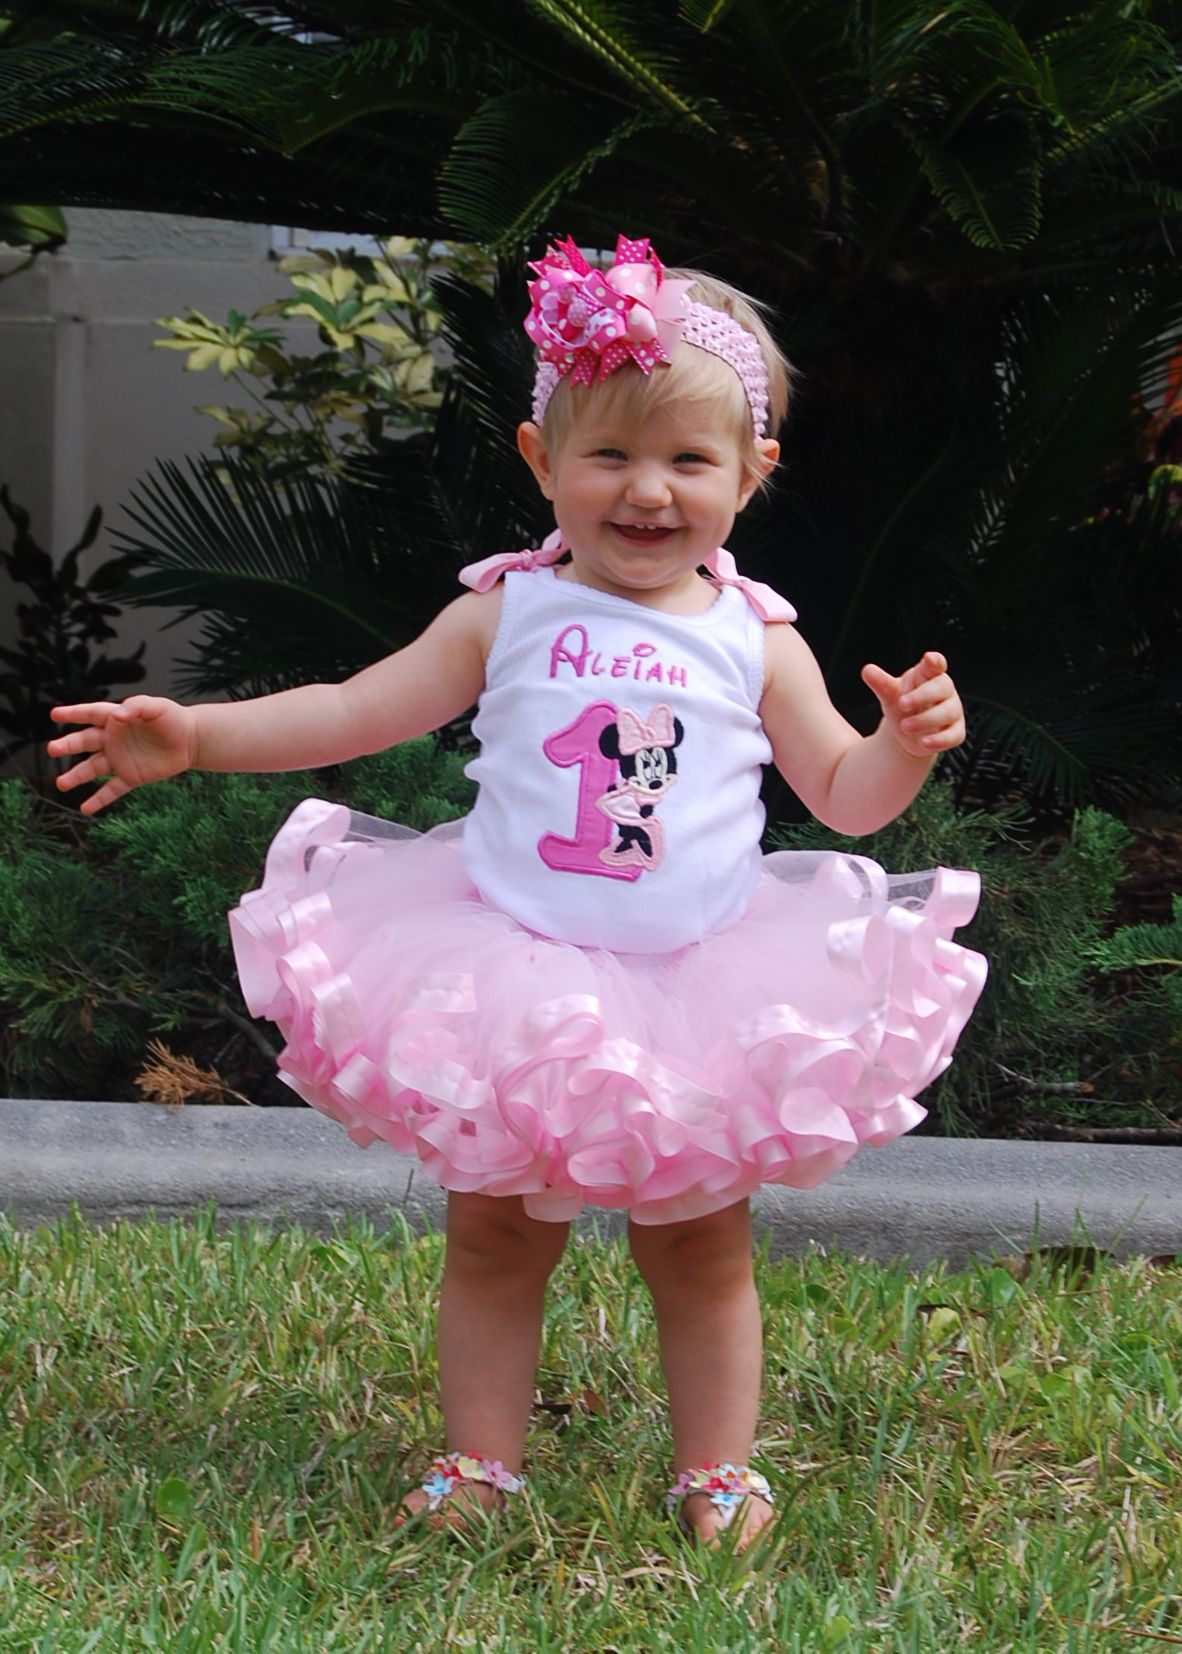 Minnie mouse birthday tutu outfit, 1st birthday outfit girl with ribbon tutu